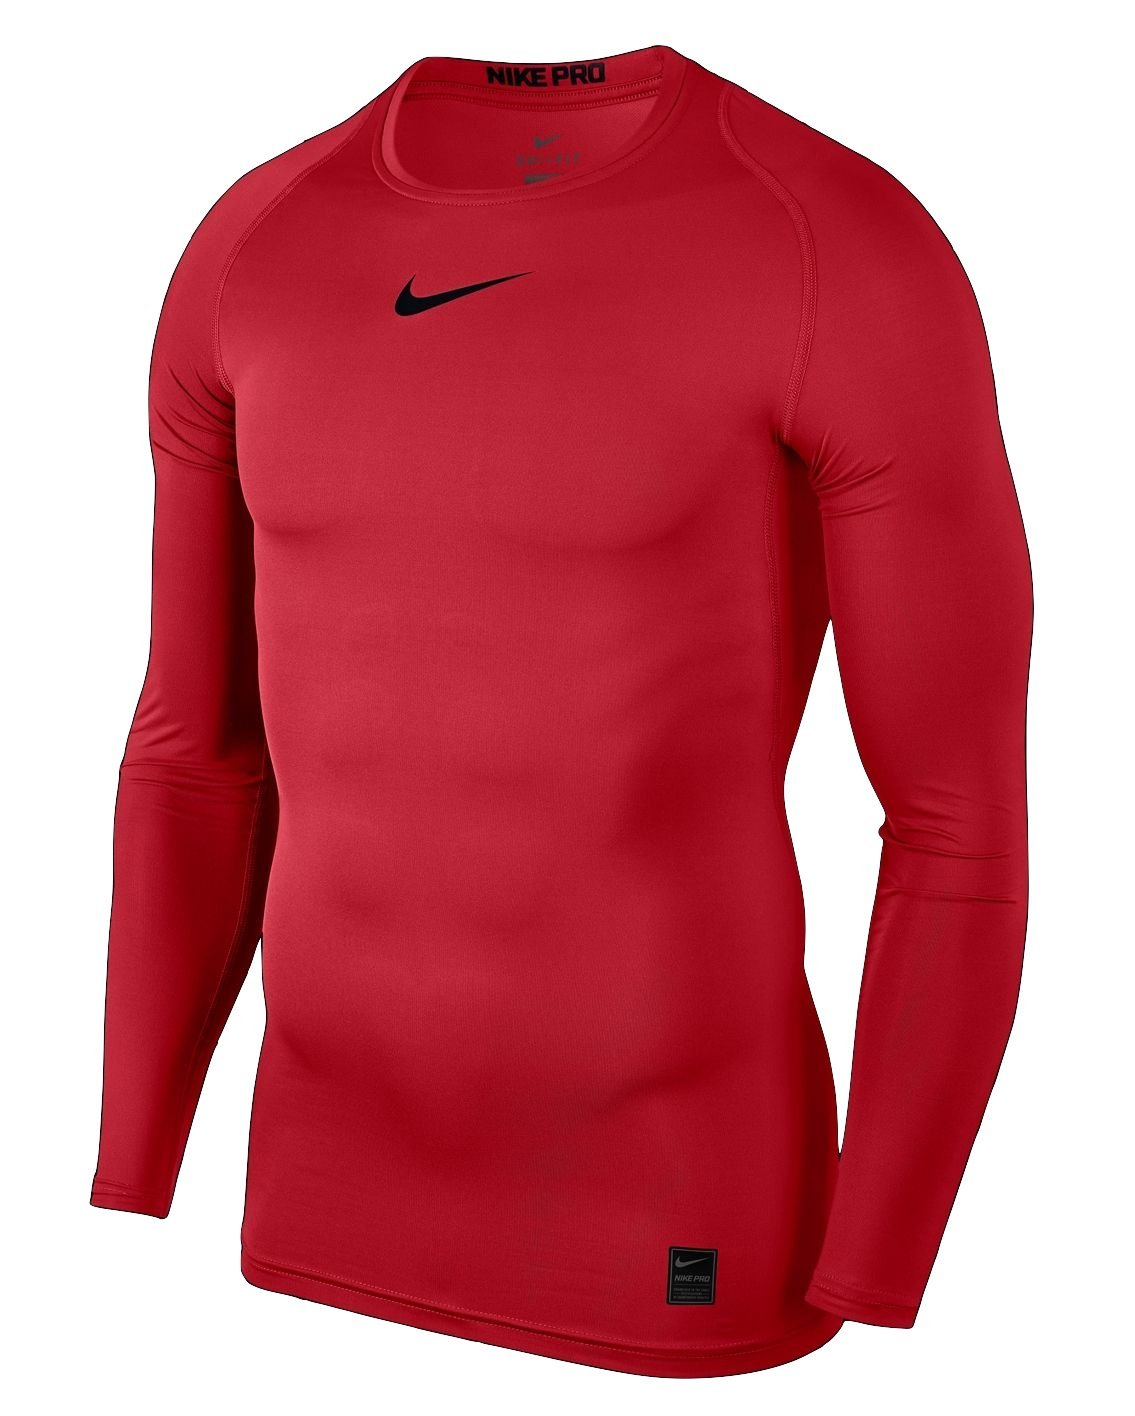 NIKE Pro Longsleeve Compression Shirt (University Red/Black, S)